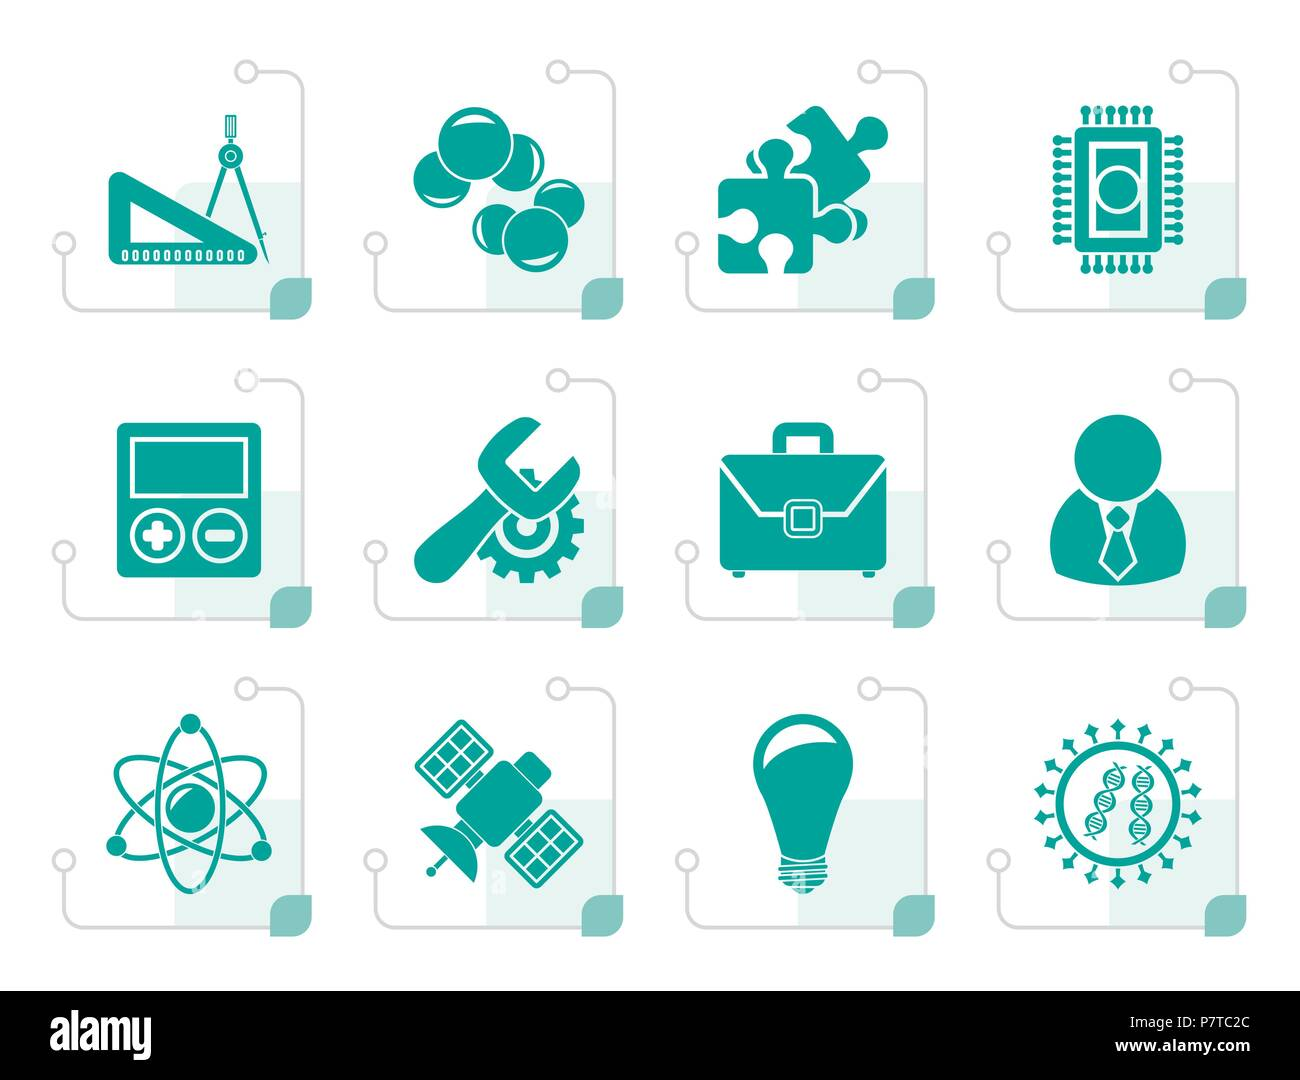 Logic Vector Vectors Stock Photos & Logic Vector Vectors Stock ...